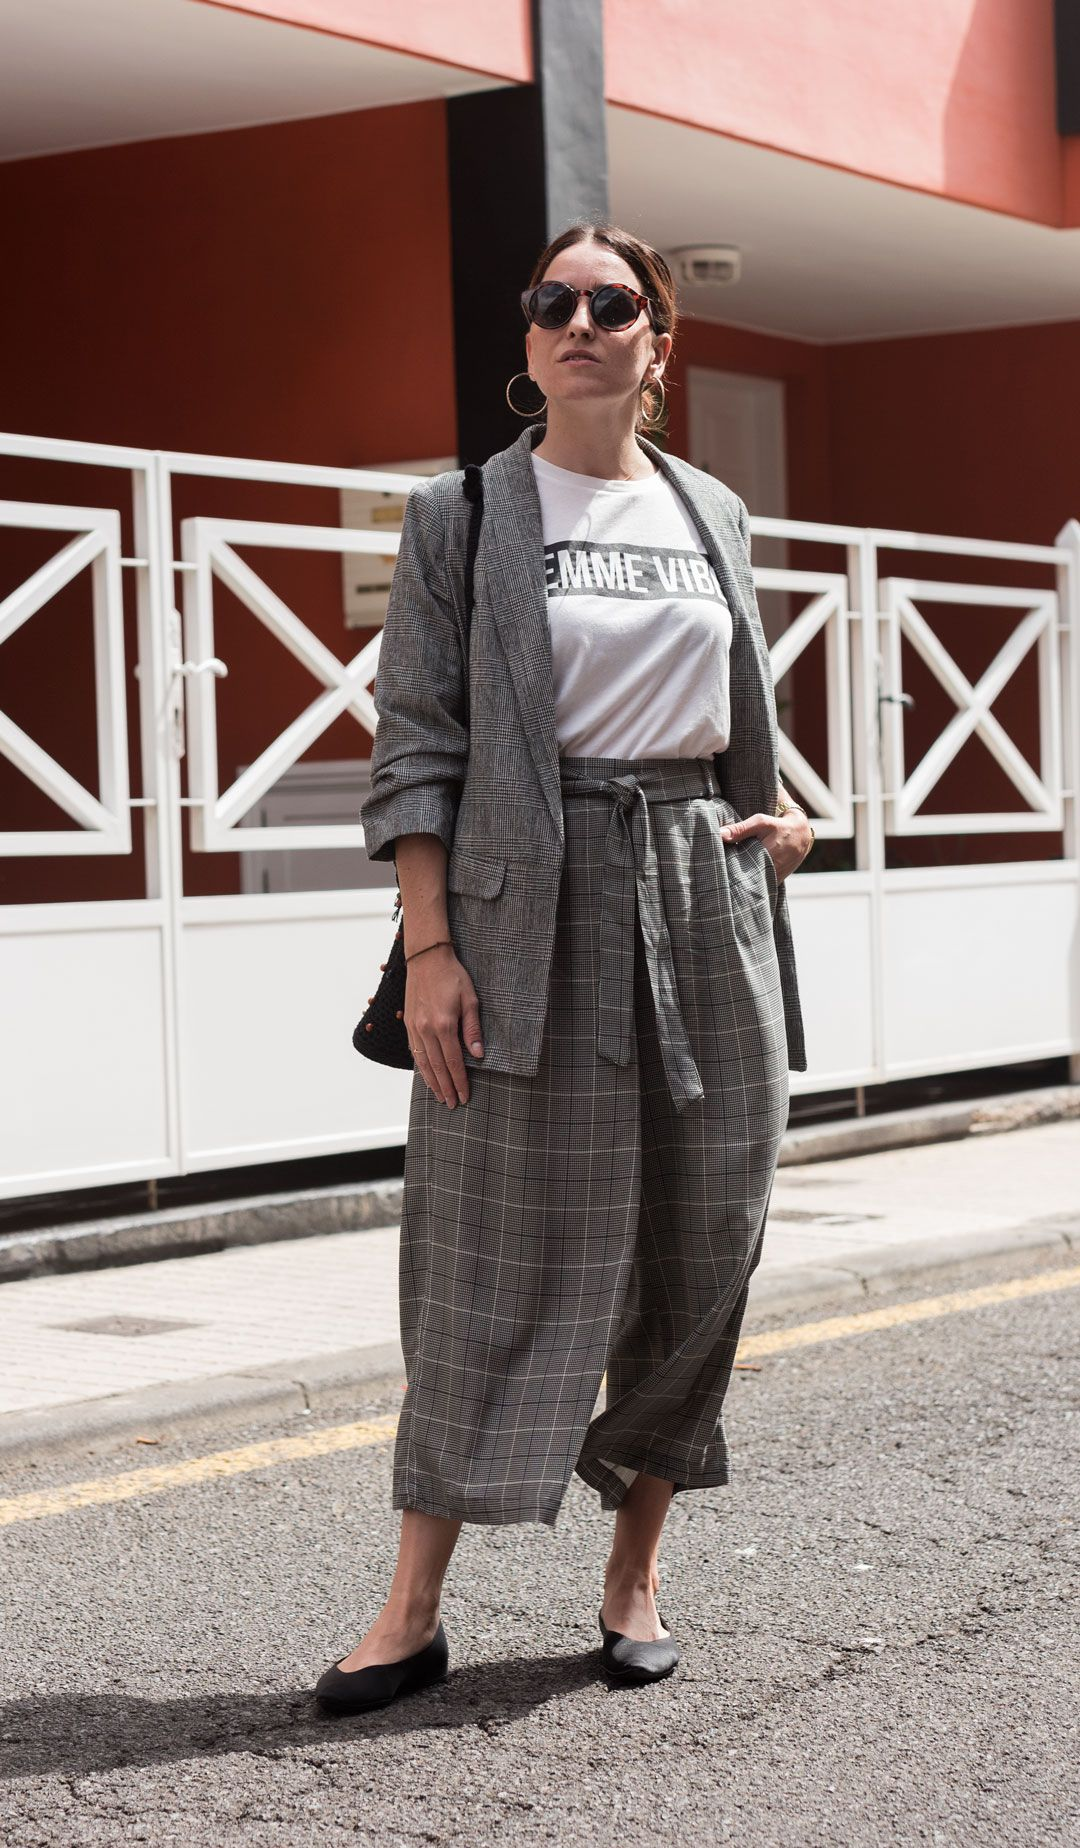 Not your average checked suit   The king print this autumn   Culottes for fall   #culottes   How to style a culotte for autumn   #transitionlook   #blazer   #Streetstyle   #minimalchic   #edgyfashion   She talks Glam   Saida Antolin   #crochetbag   #DYIbag   #falloutfit   #slogantee   #feministtee   Effortless chic   #OOTD   UK Blogger